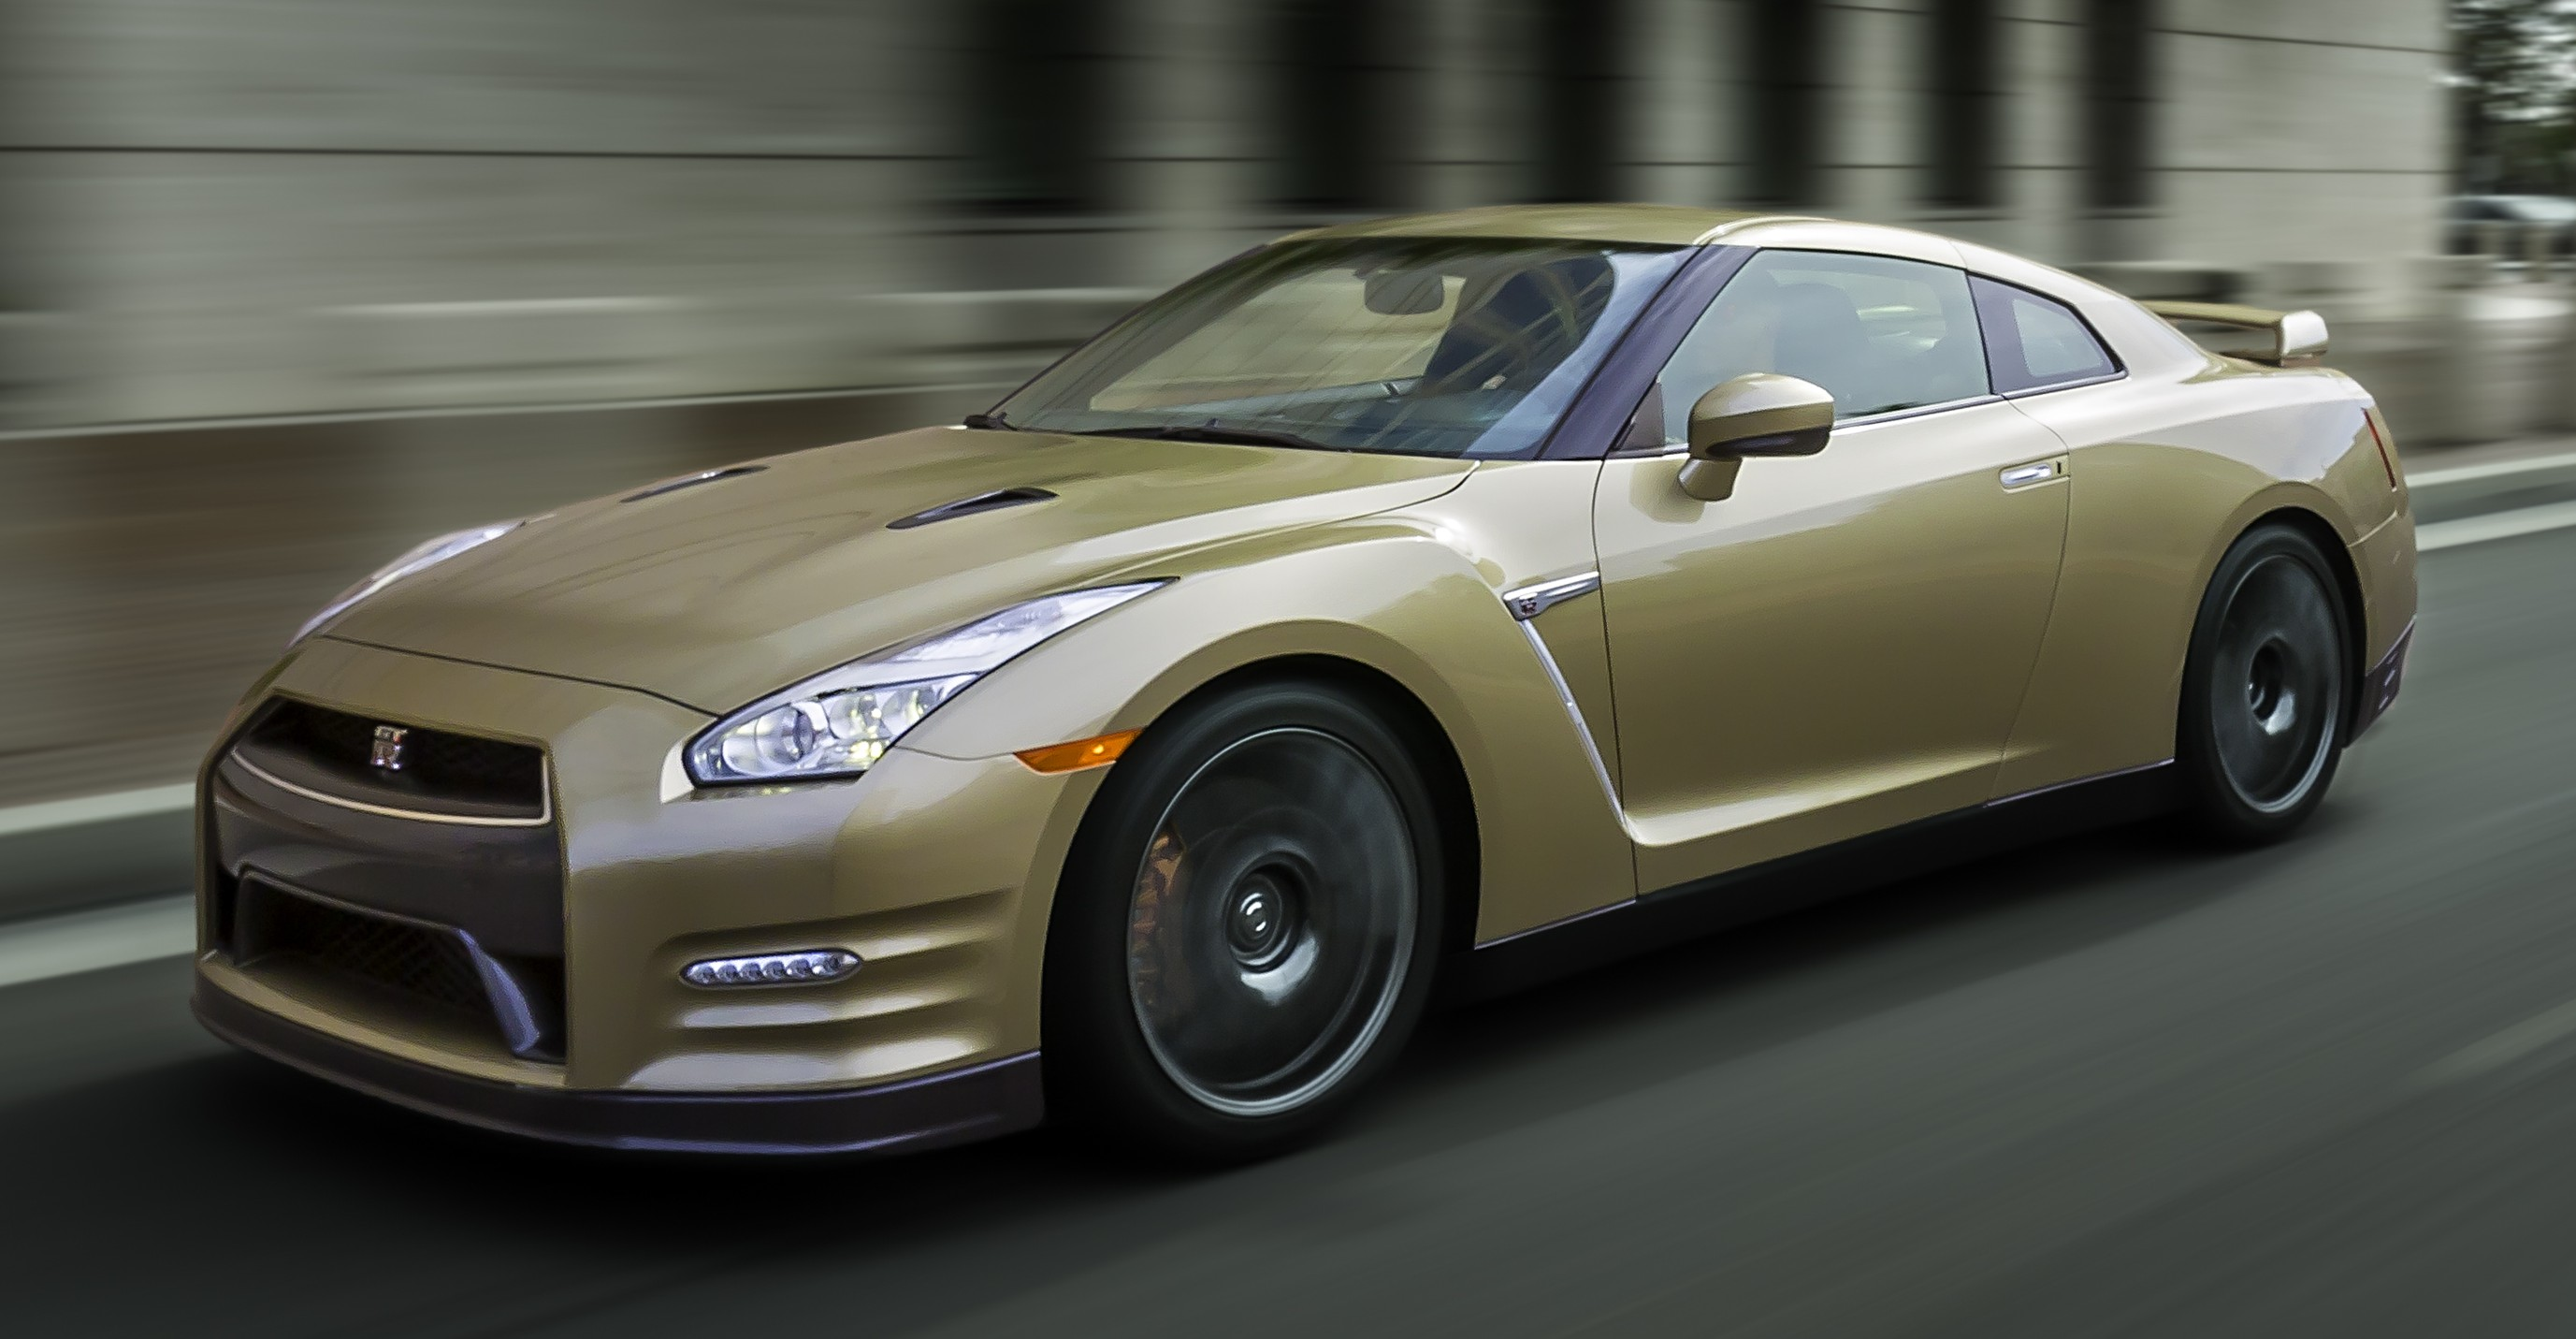 2018 Nissan Gt R >> GALLERY: Nissan GT-R 45th Anniversary Gold Edition Image 335100